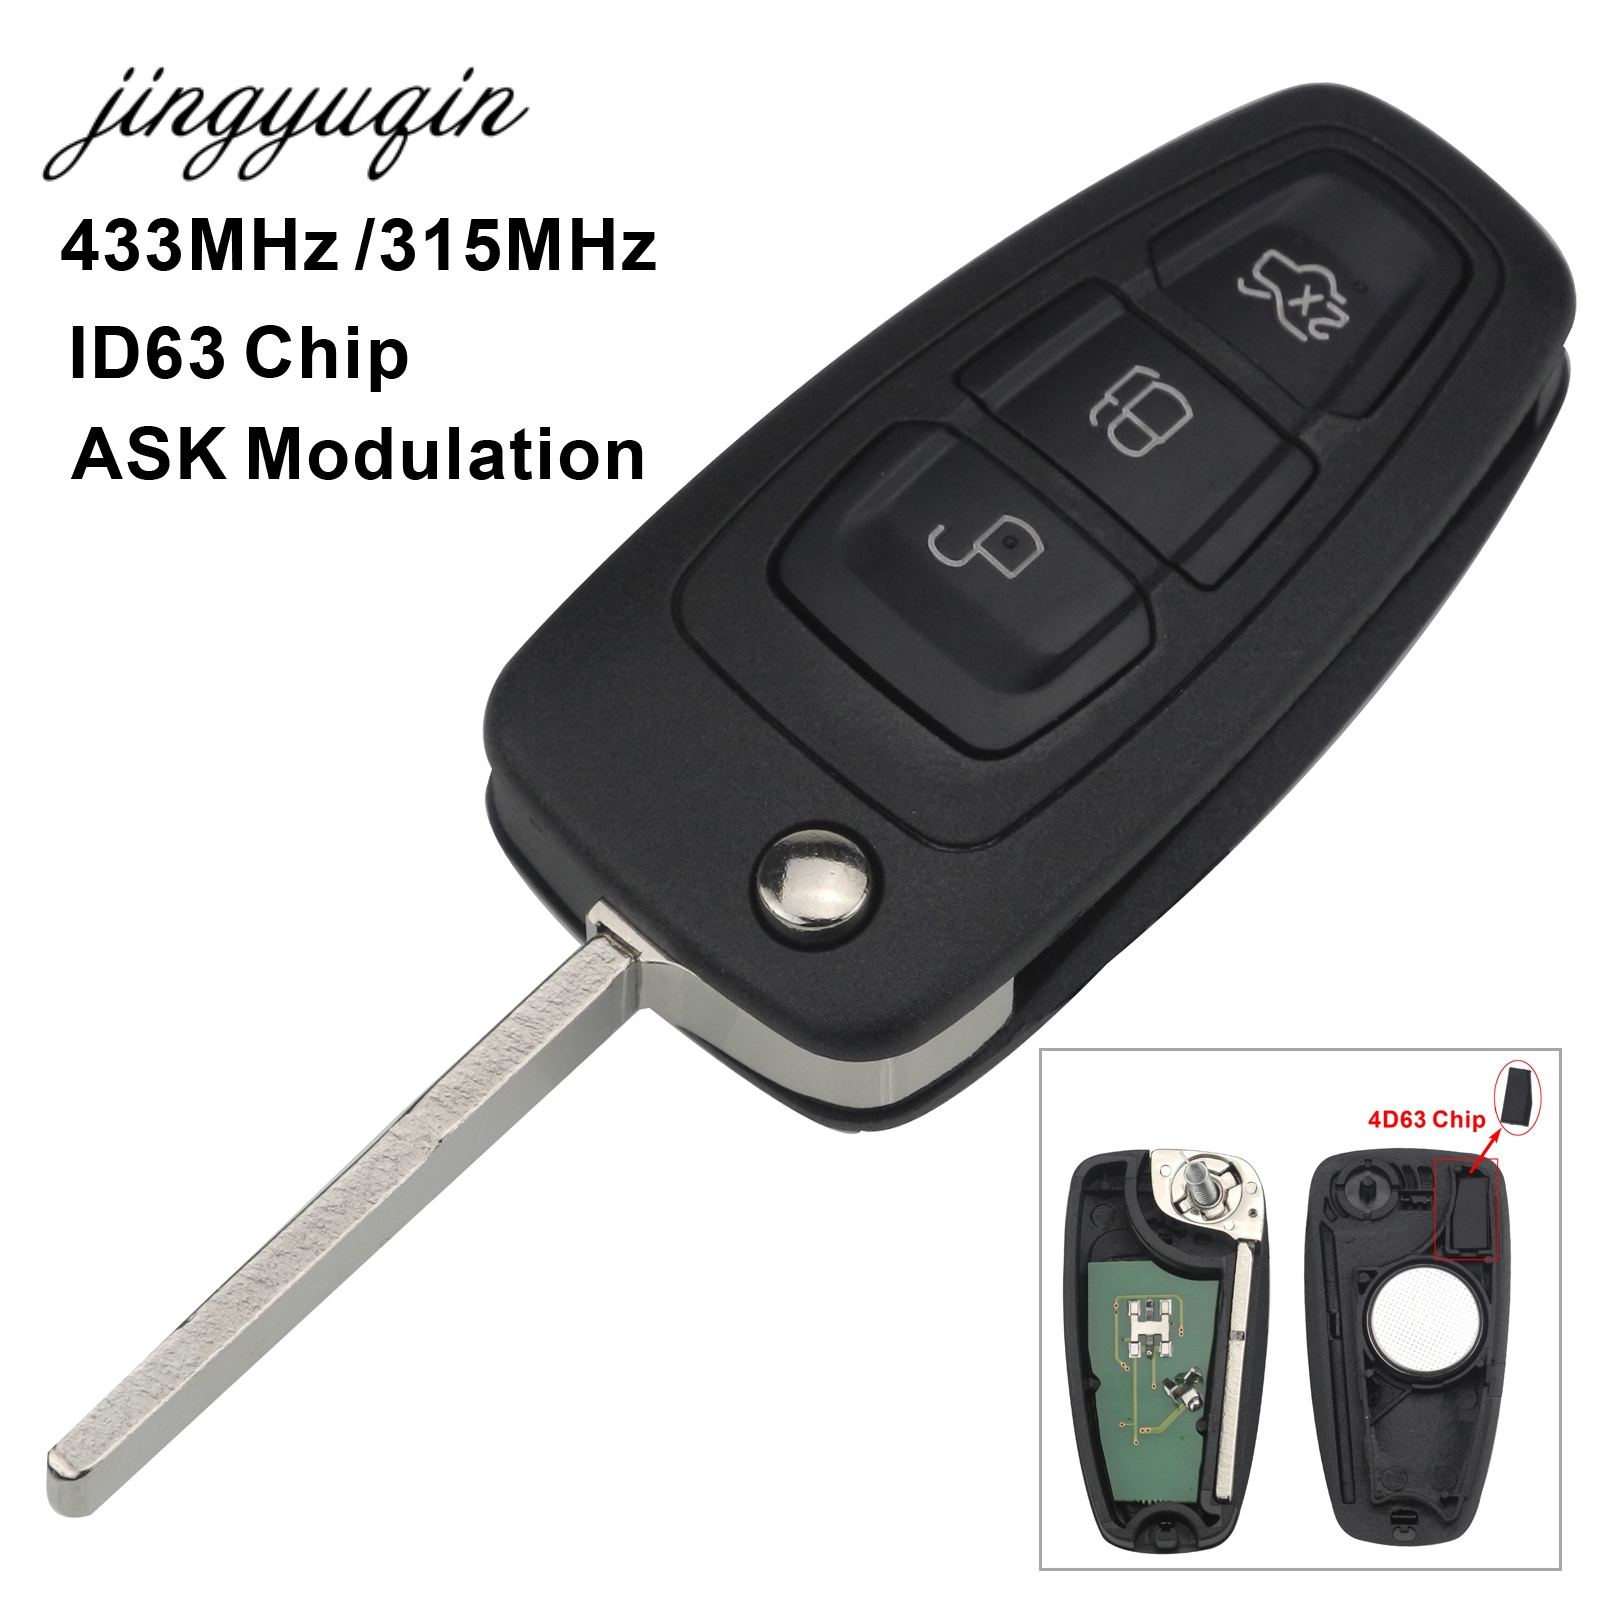 jingyuqin 3 Button ID63 Chip 433/315MHZ Flip Keyless Entry Fob For Ford Focus Fiesta Remote Key Control ASK Signal HU101 Blade 2003 03 ford taurus pink keyless entry remote 4 button